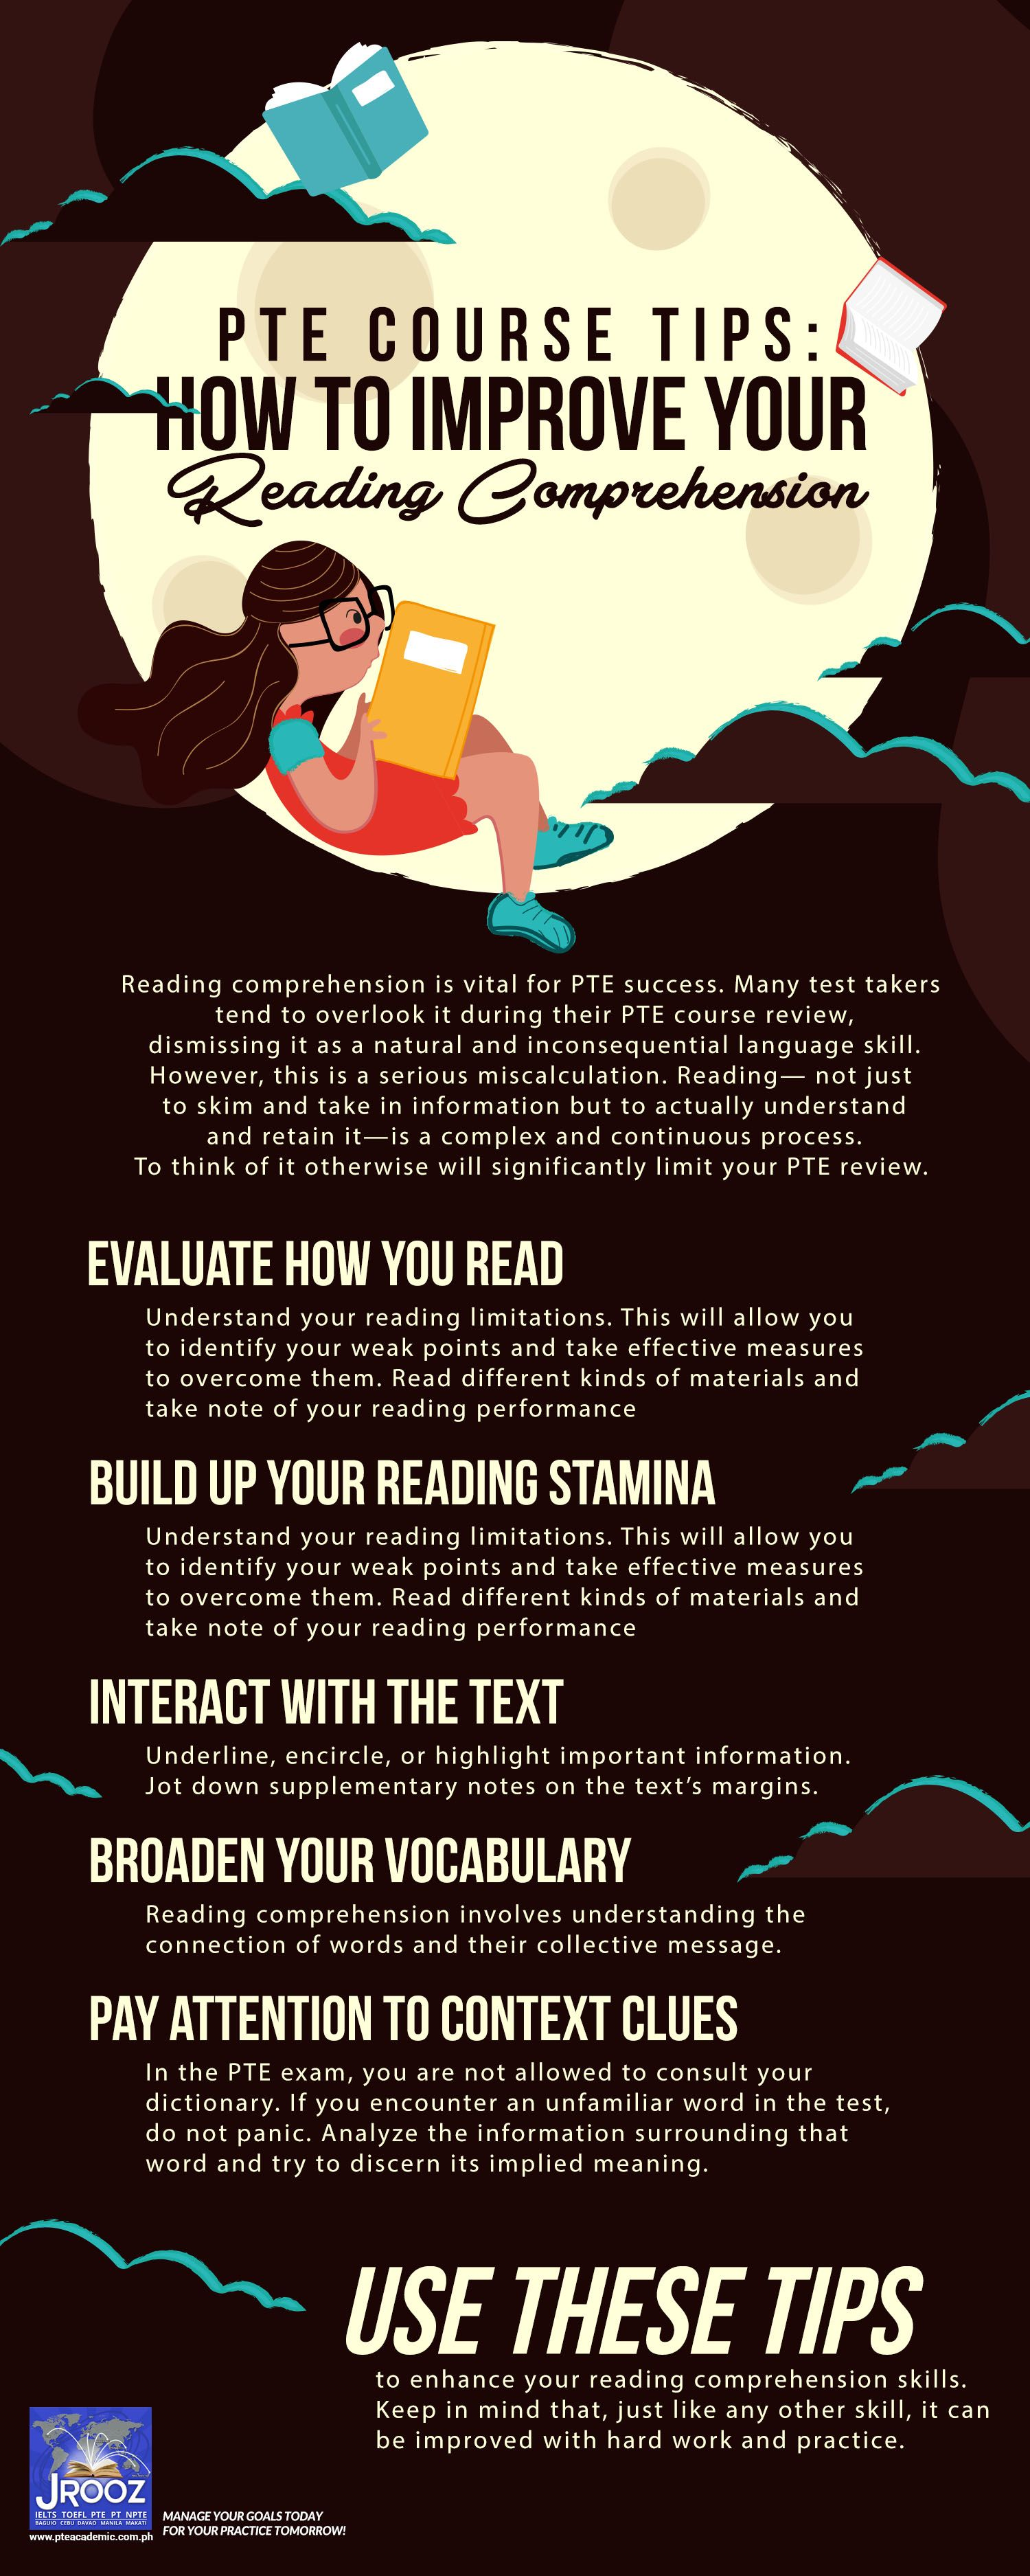 Pte Course Tips How To Improve Your Reading Comprehension Reading Comprehension Is Vital For Pte Success M Reading Comprehension Comprehension Reading Tips How to improve your reading